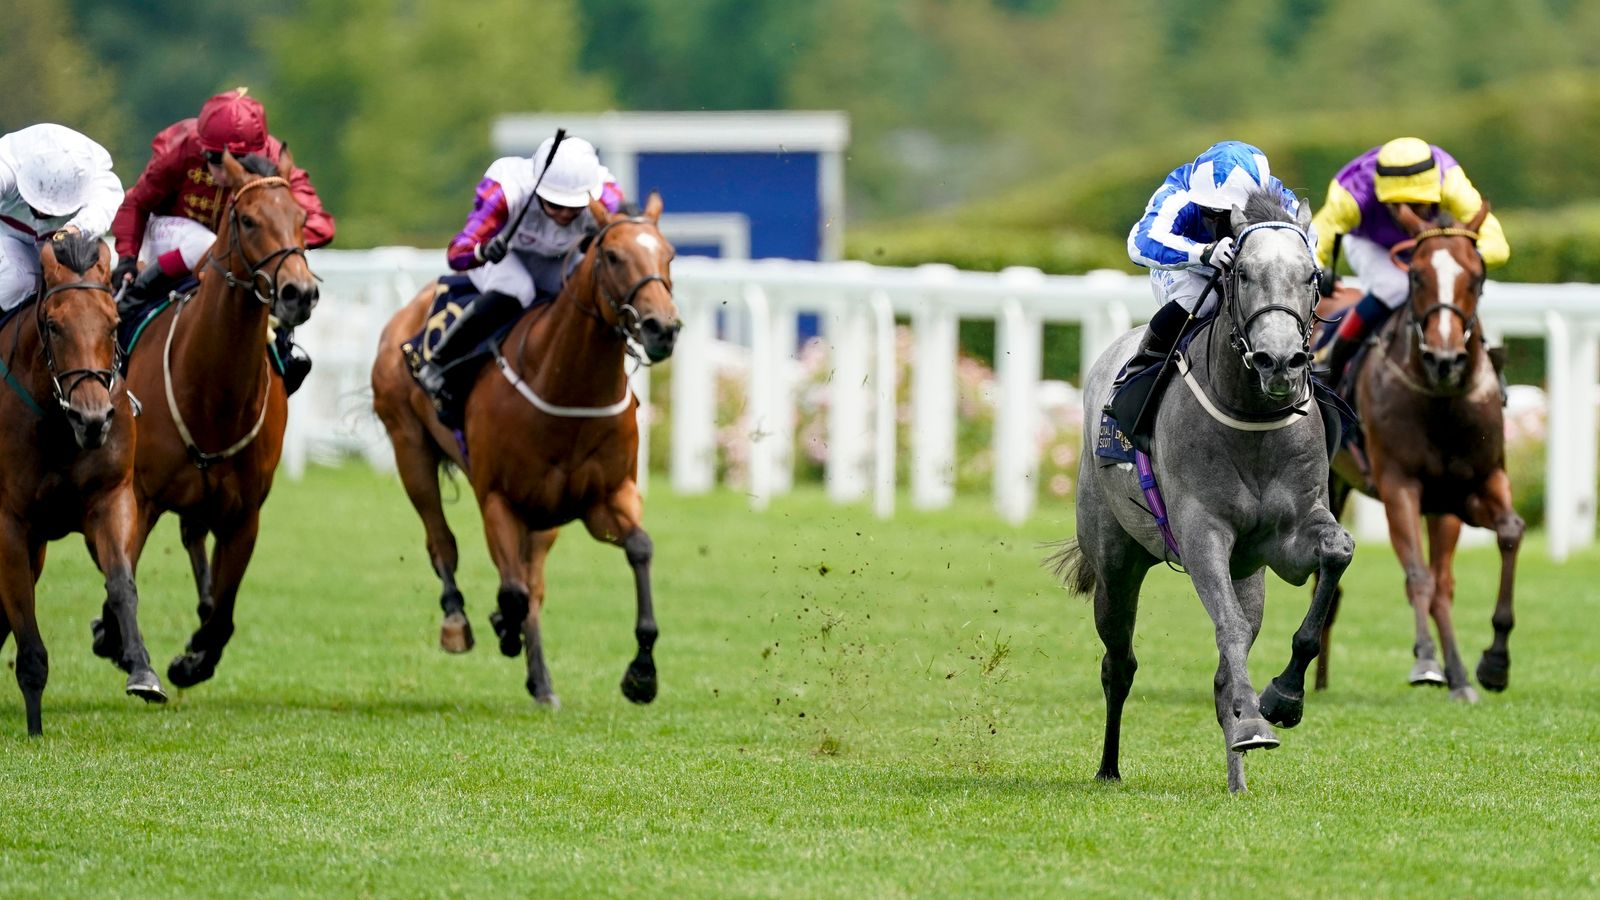 British Champions Day: Ascot sprint now the plan for Art Power after Curragh win as Winter Power heads to Paris